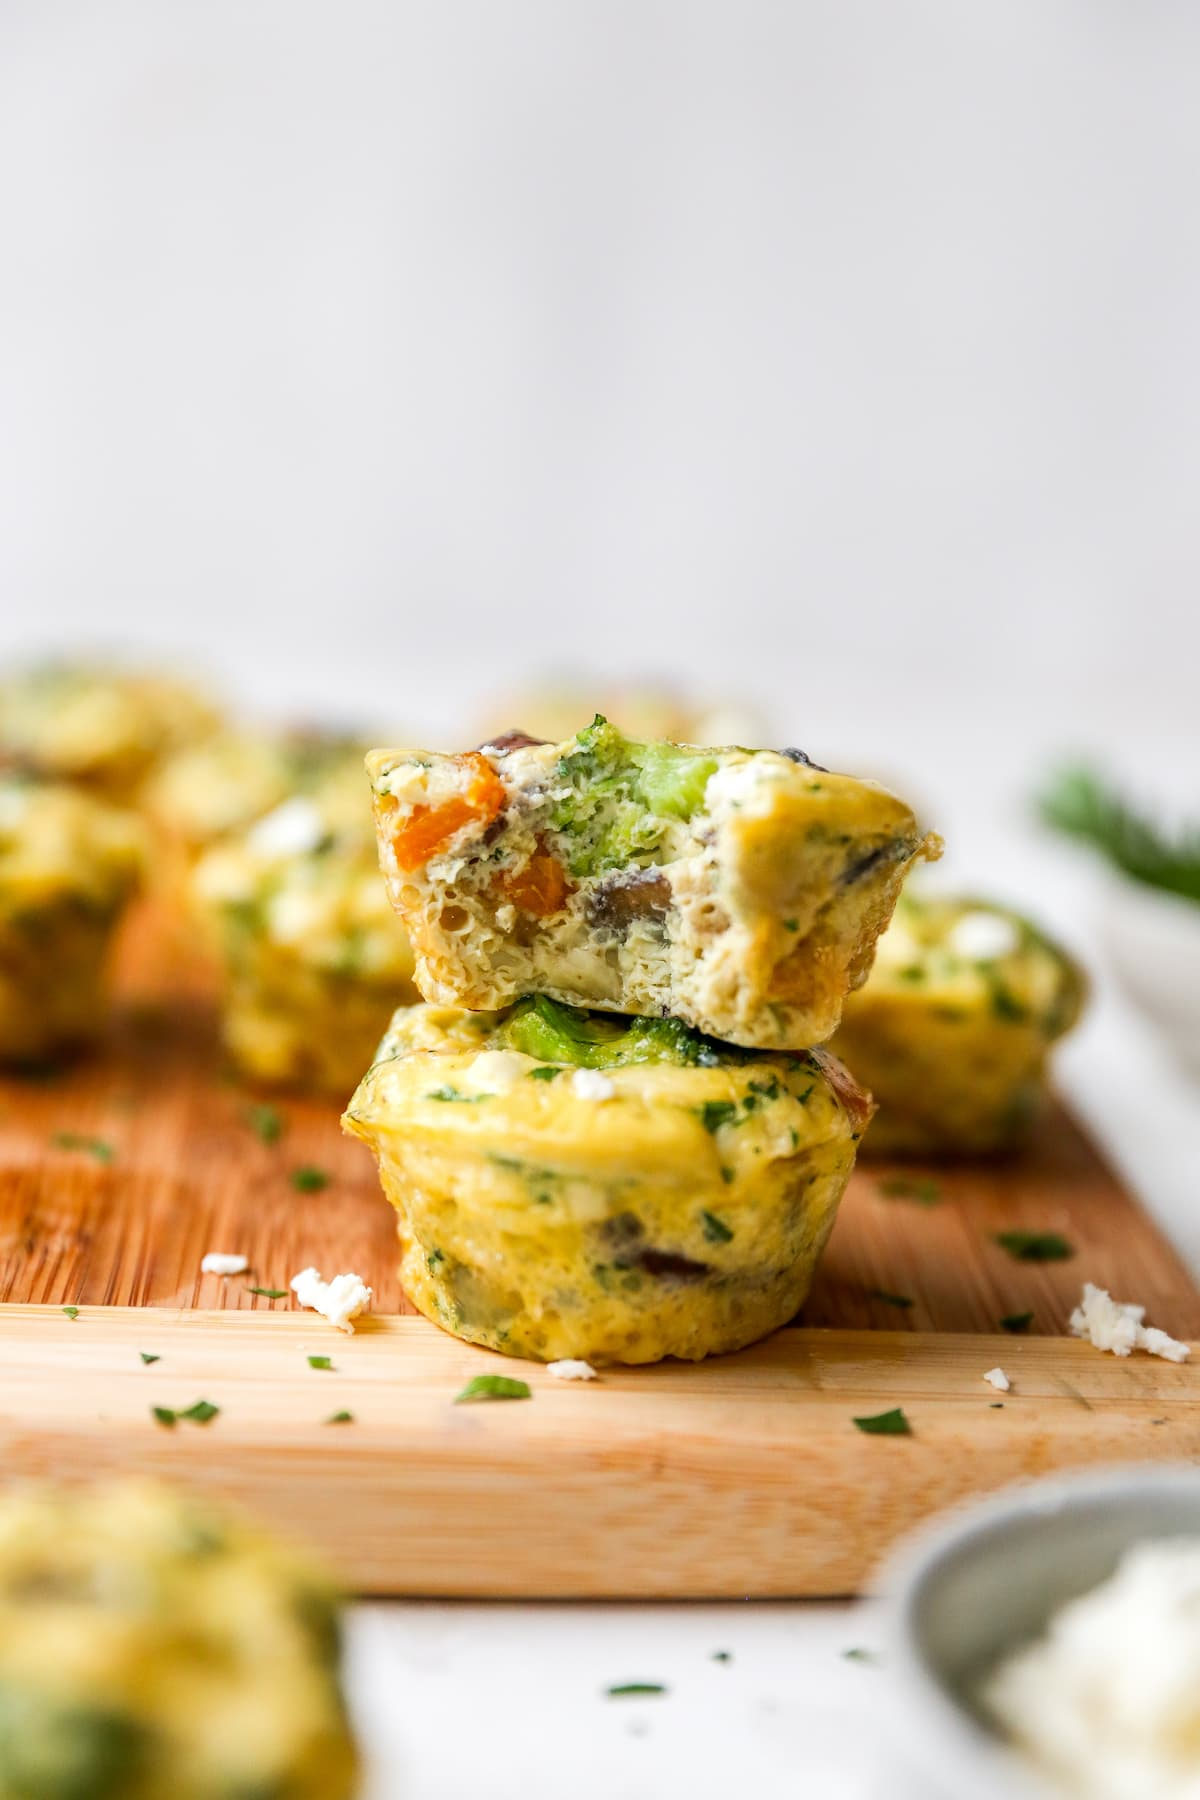 Two stacked egg muffins with veggies. The top egg cup has a bite taken out of it.